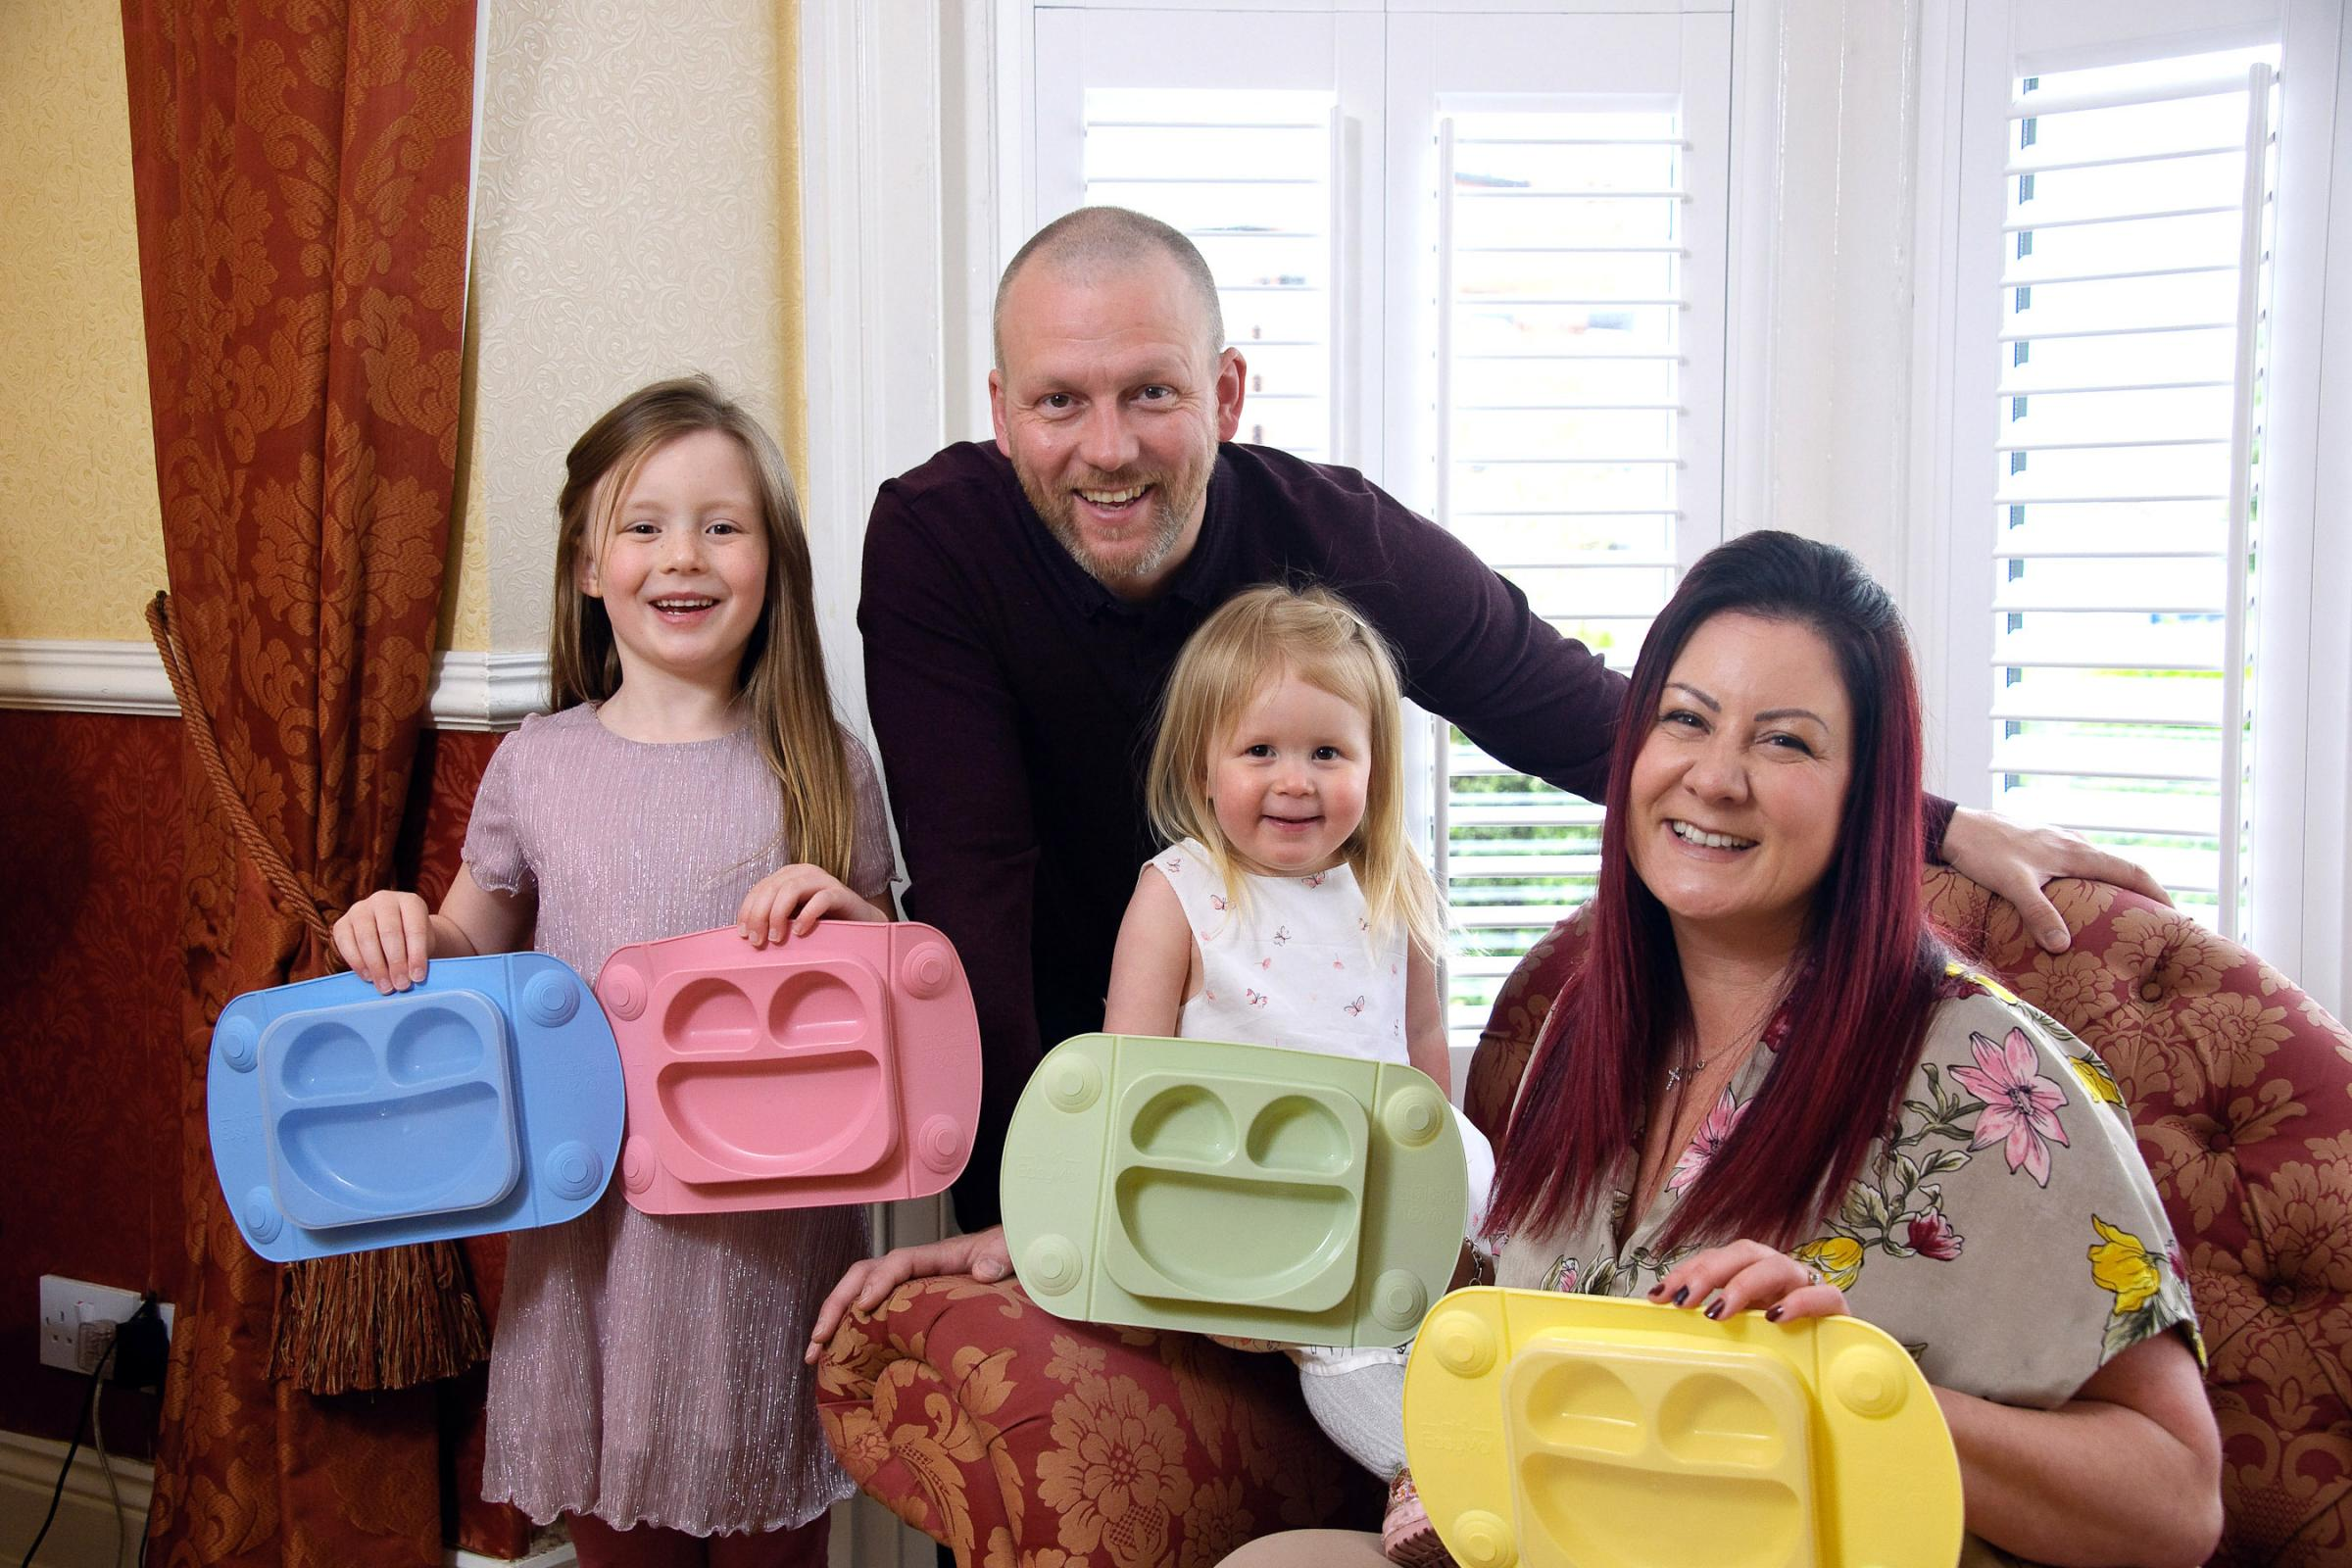 Helen Davies with her partner Lloyd and their two children Elora, six, and Keira, three